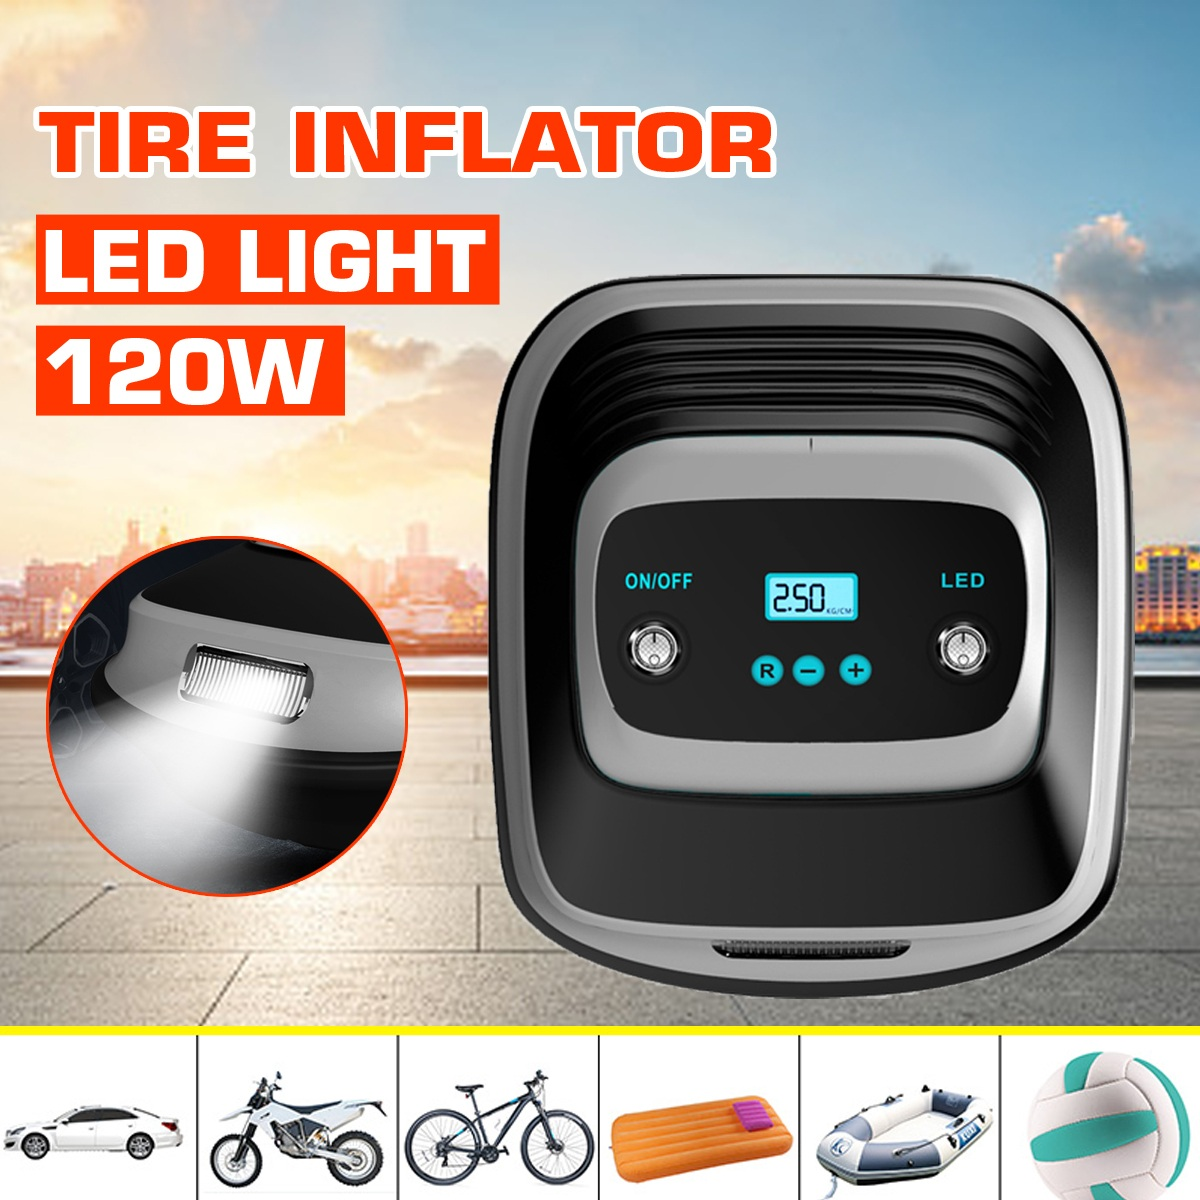 120W DC 12V Car Portable Air Compressor LED Light Tire Pump Digital LCD Display Tire Inflator Auto Air Pump For Car Motorcycle